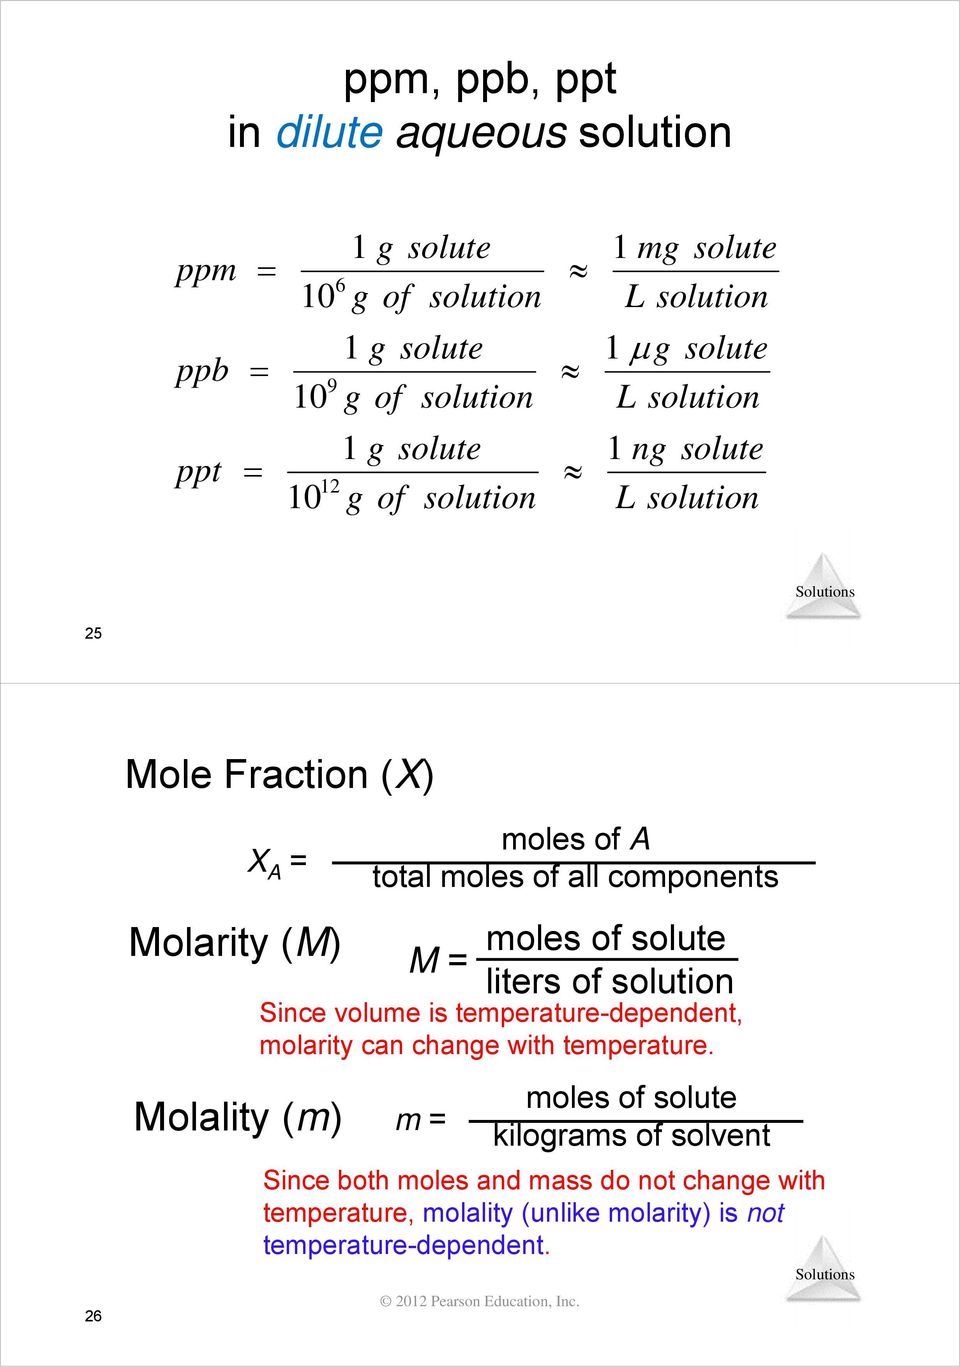 Solutions  Chapter 13  Properties of Solutions  Lecture